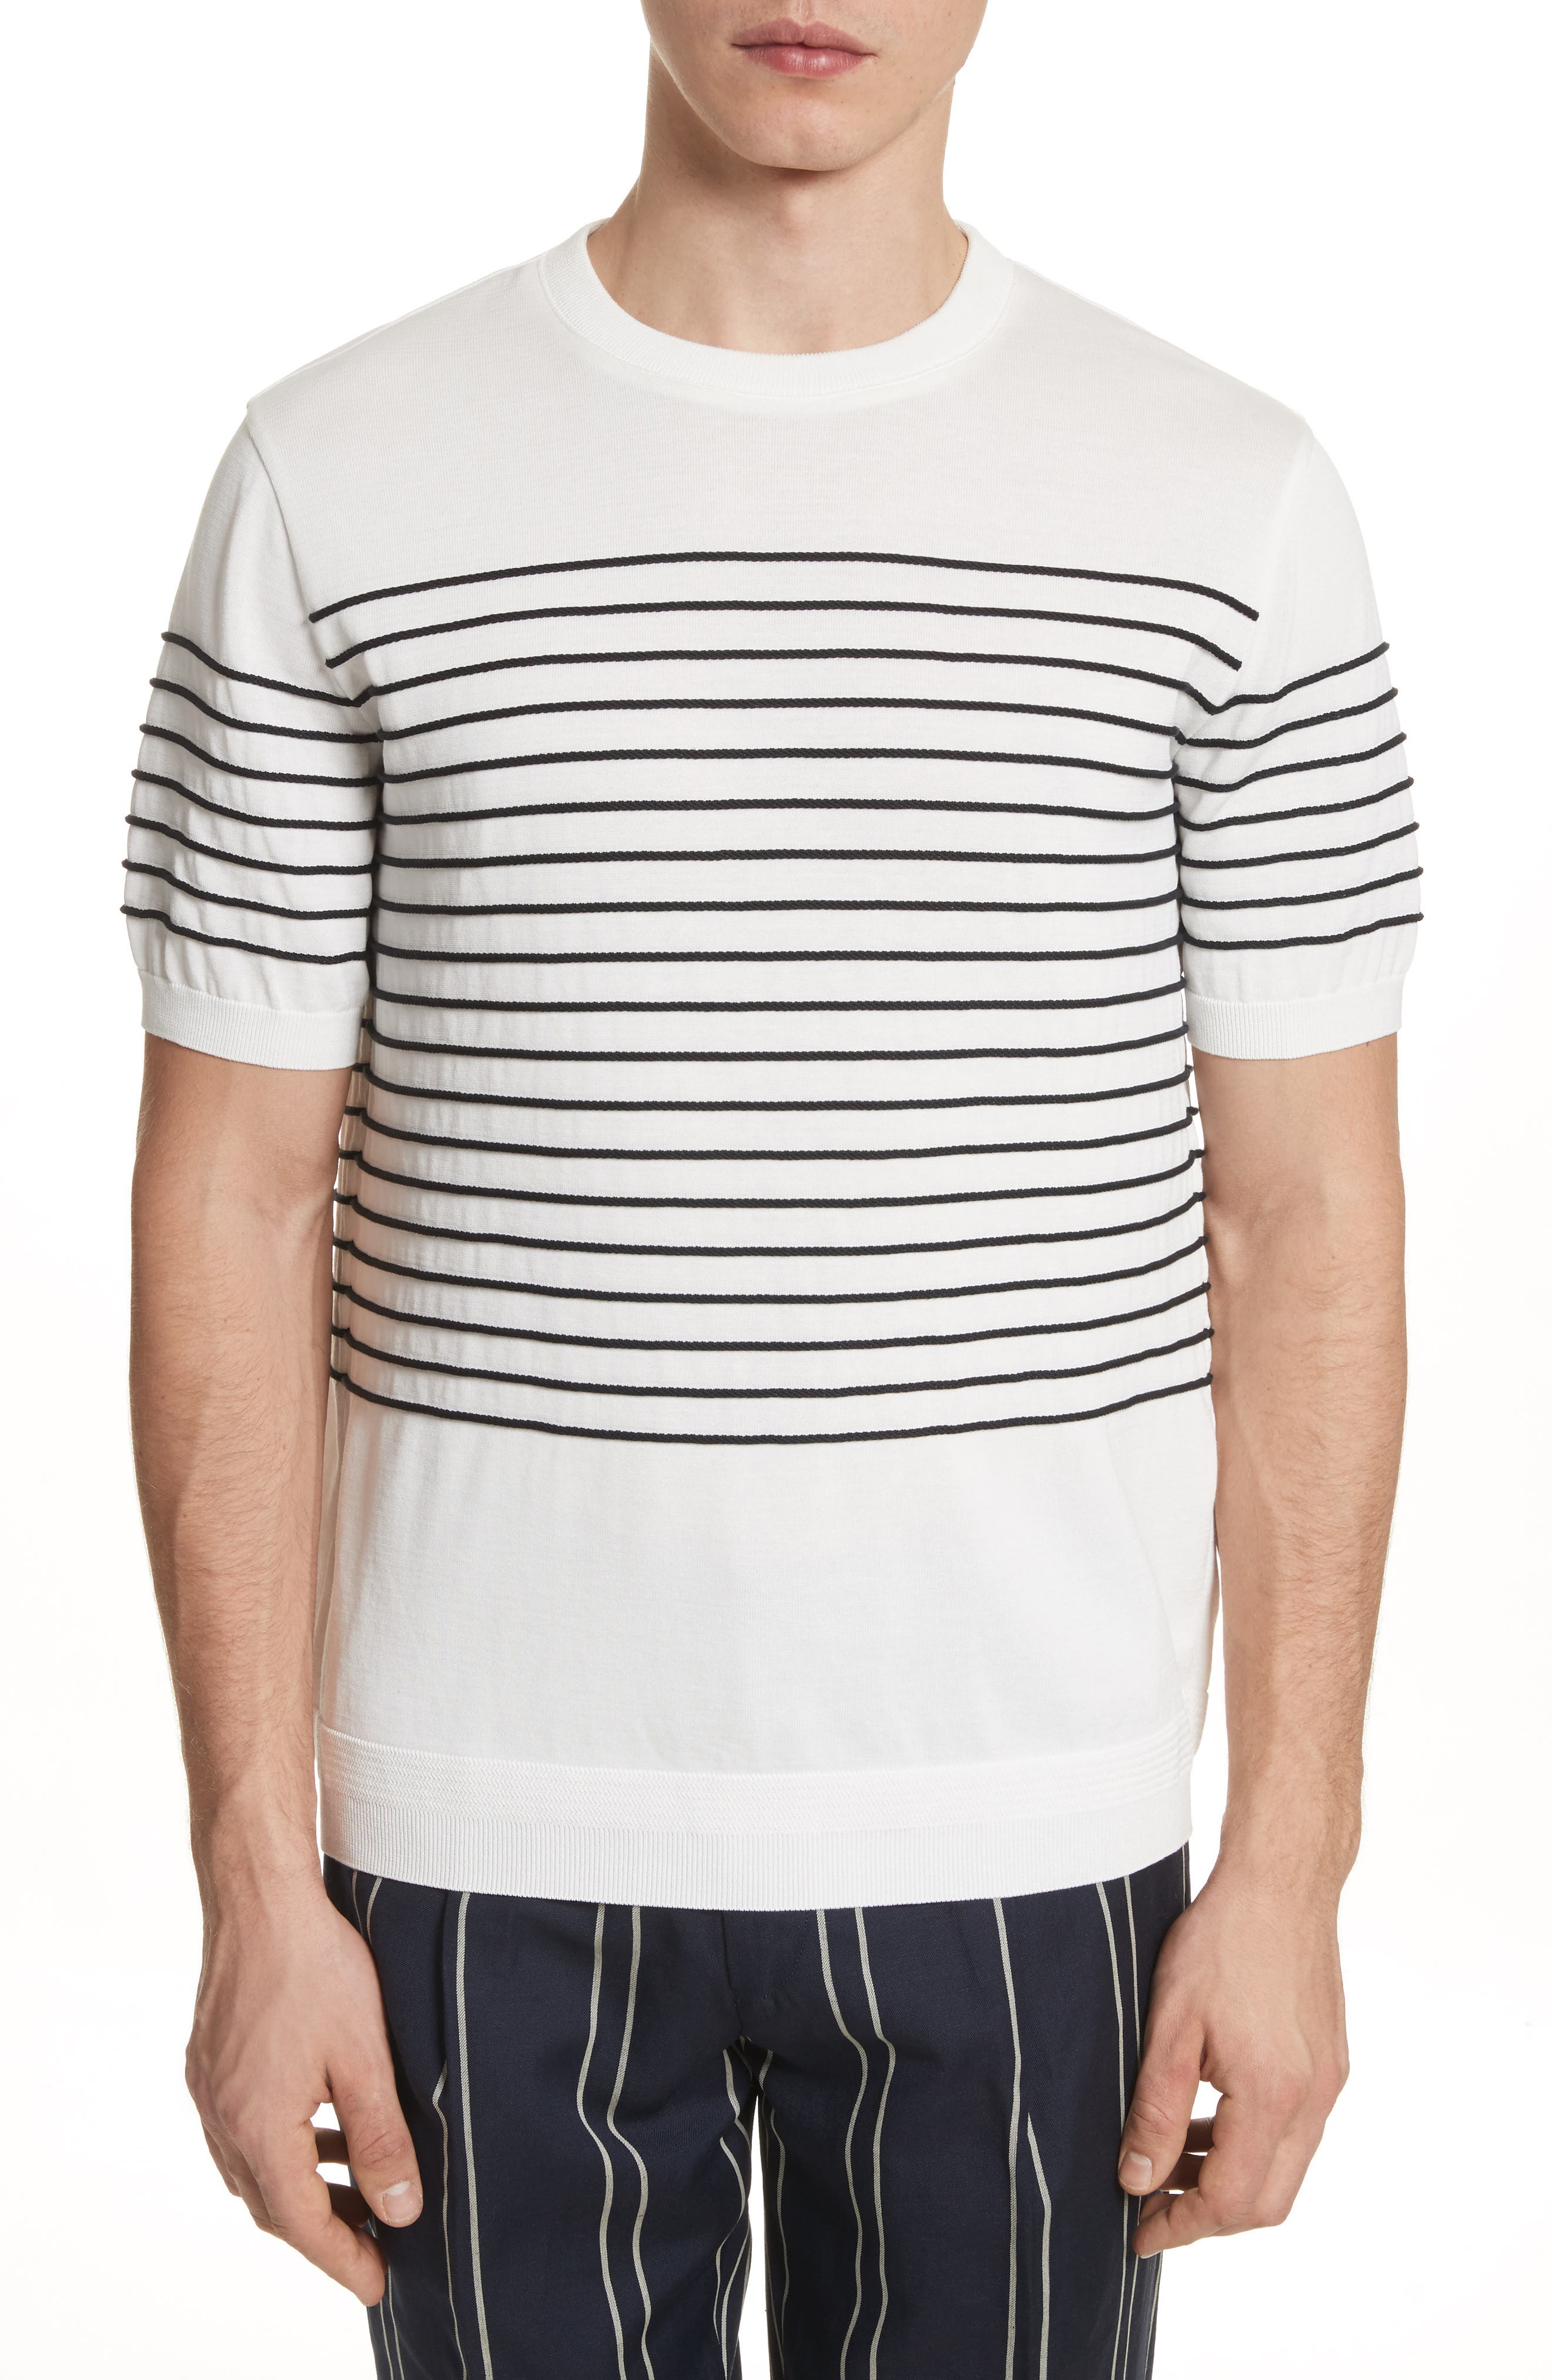 Tomorrowland Tricot Stripe T-Shirt